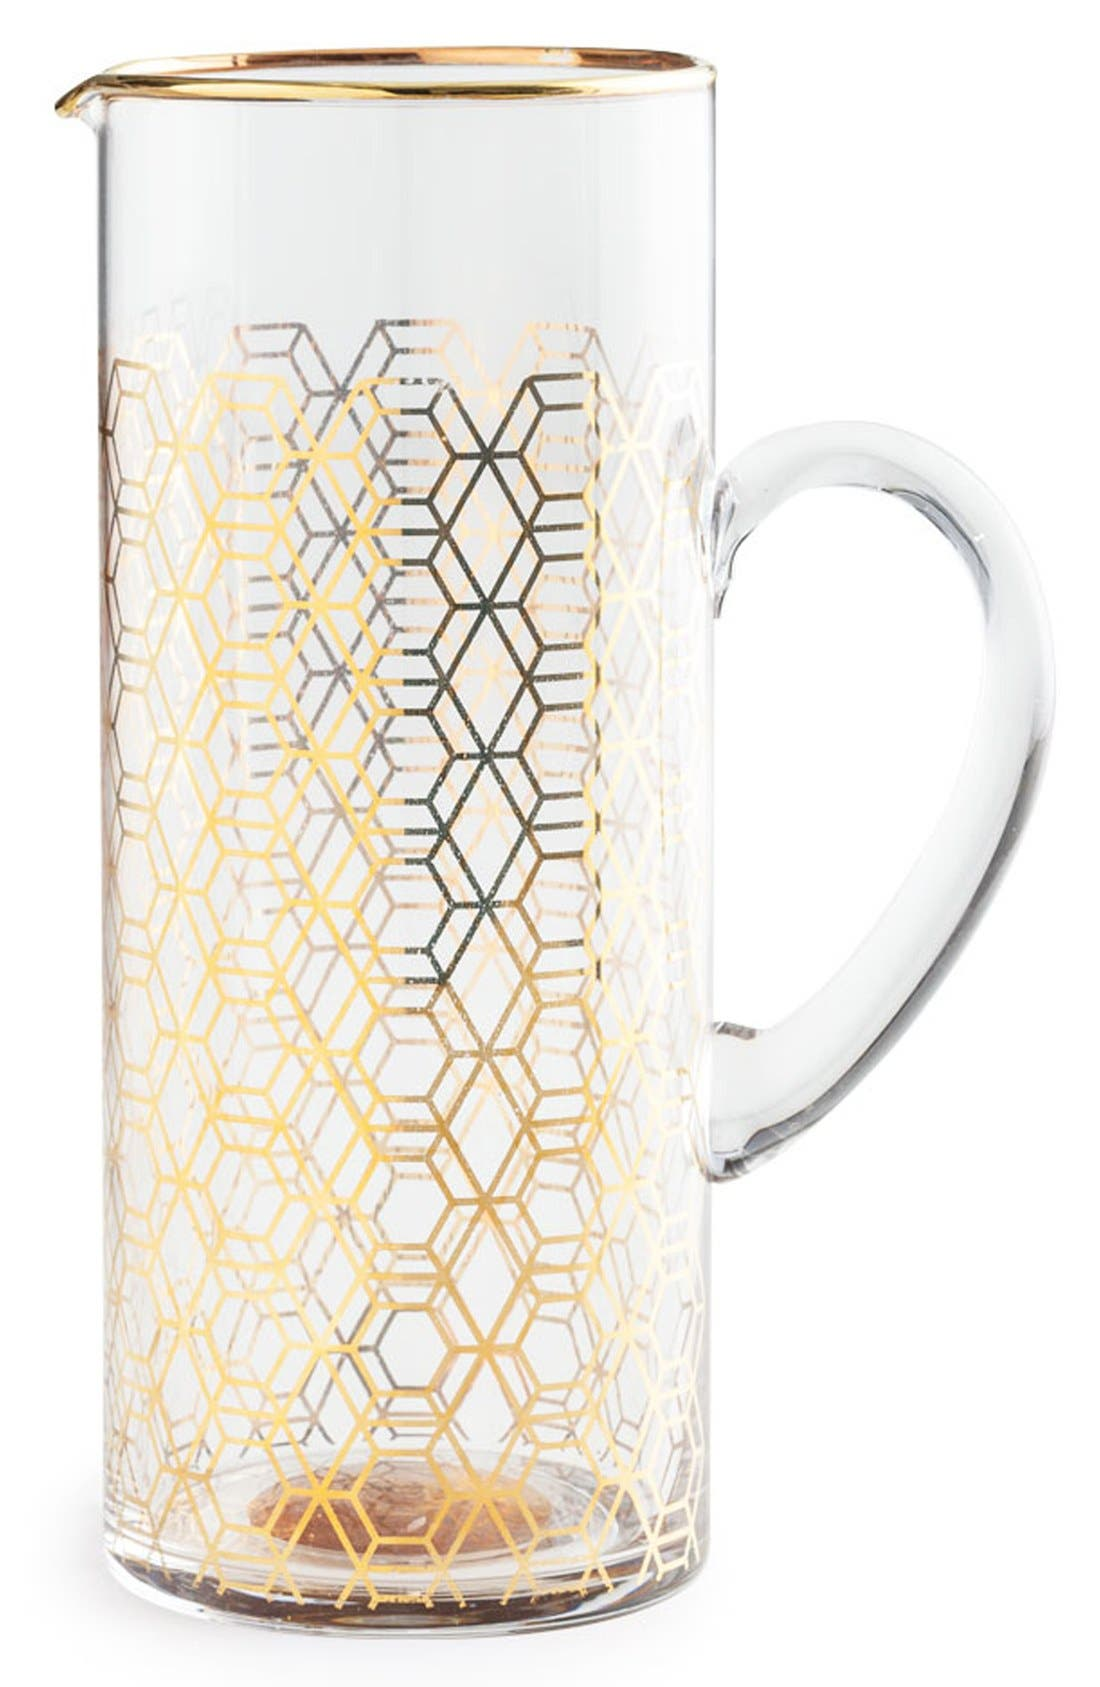 Geometric Glass Pitcher,                             Main thumbnail 1, color,                             Metallic Gold